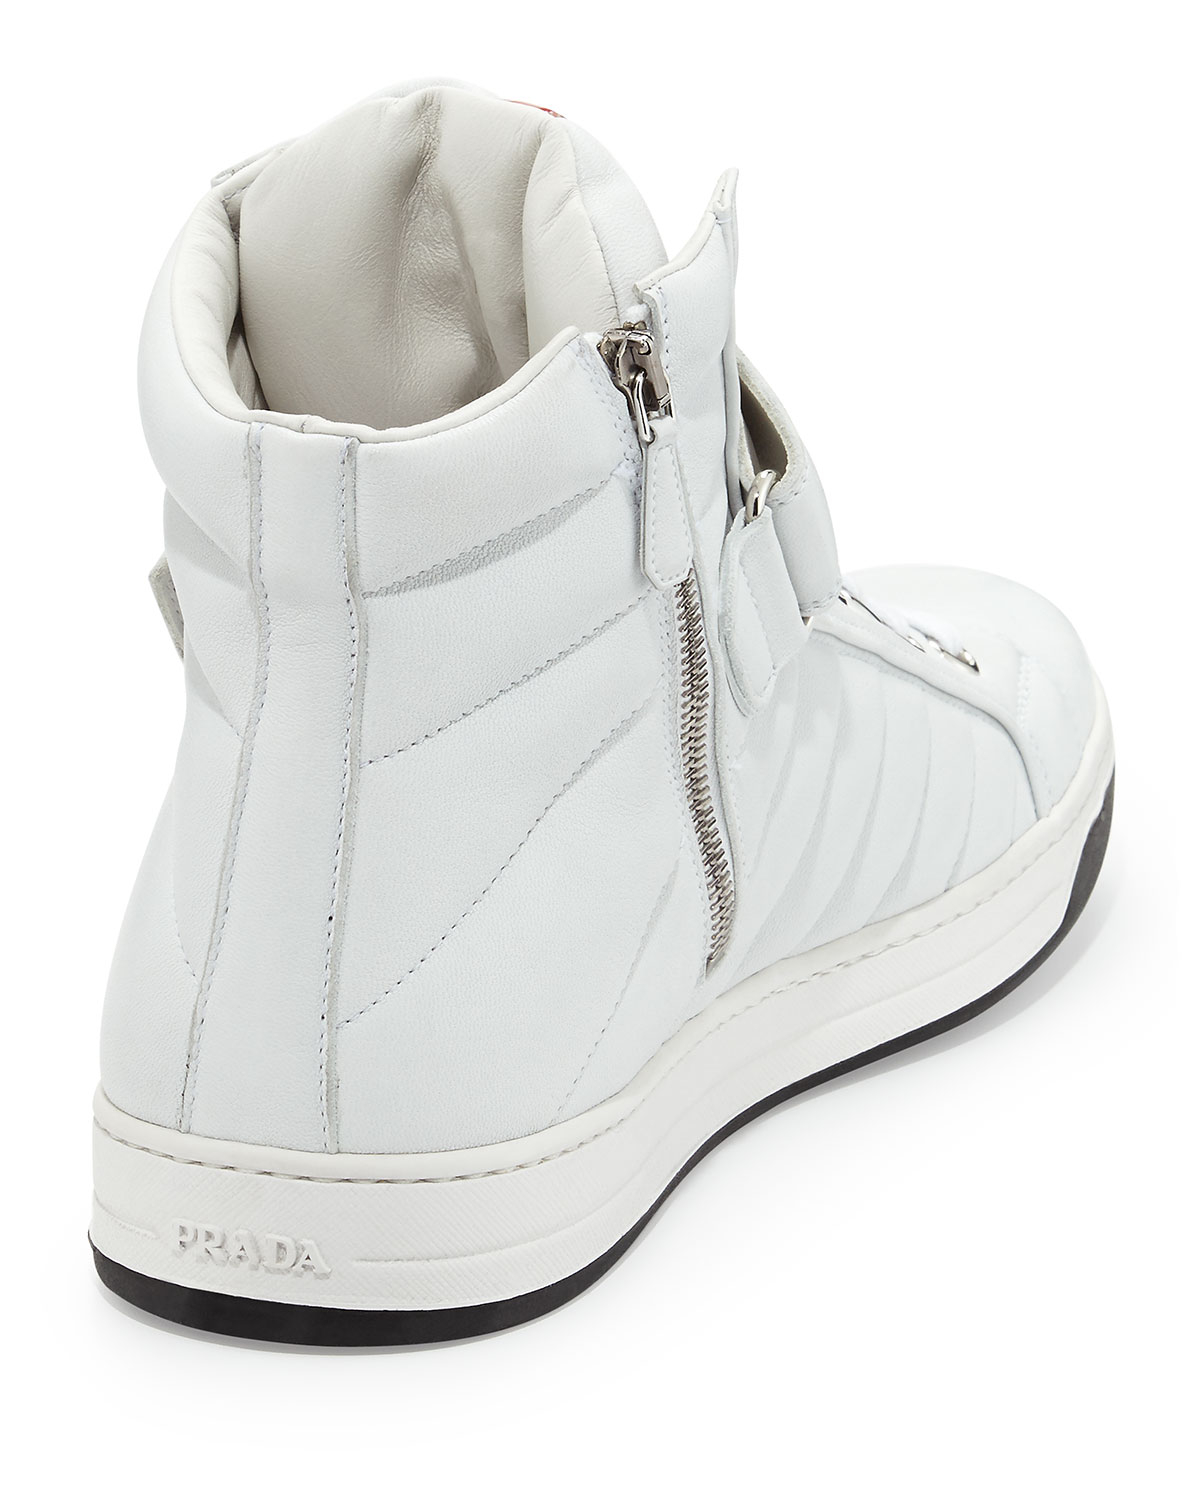 5ea4d6fc4c770 ... where to buy prada quilted napa grip strap high top sneaker in white  for men lyst